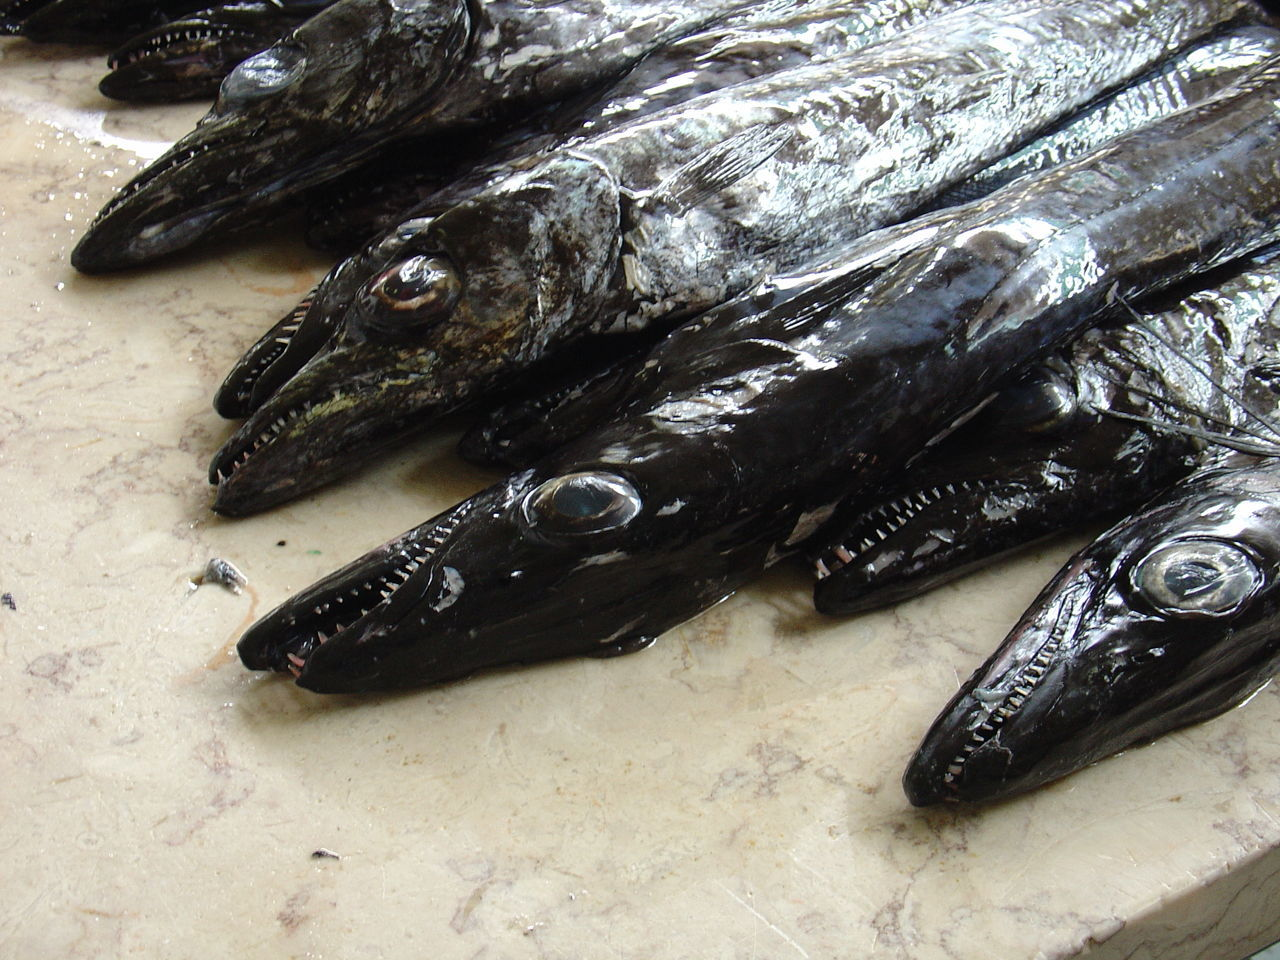 Animal Themes Aphanopus Carbo Close-up Espada Preta Fish Food Food And Drink Madeira Madeira Islands, Portugal Madeira, Portugal No People Schwarzer Degenfisch Seafood